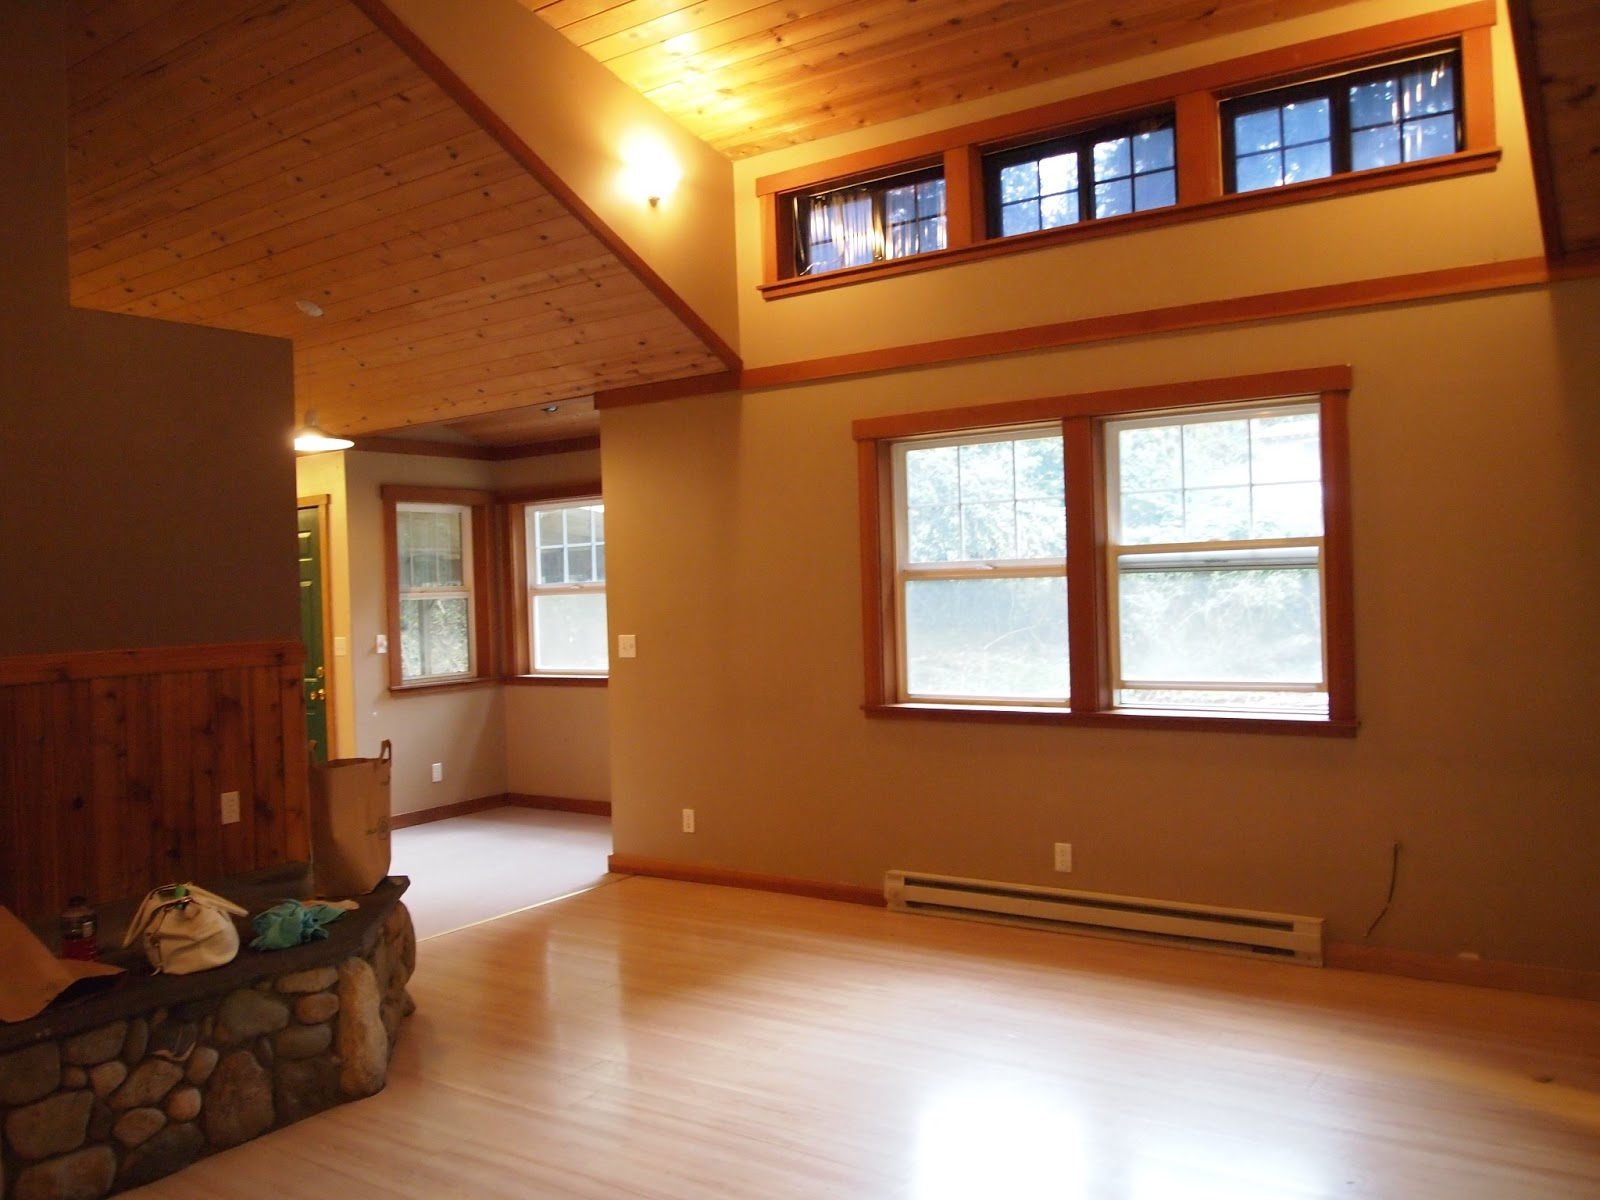 Living Room Colors With Wood Beams